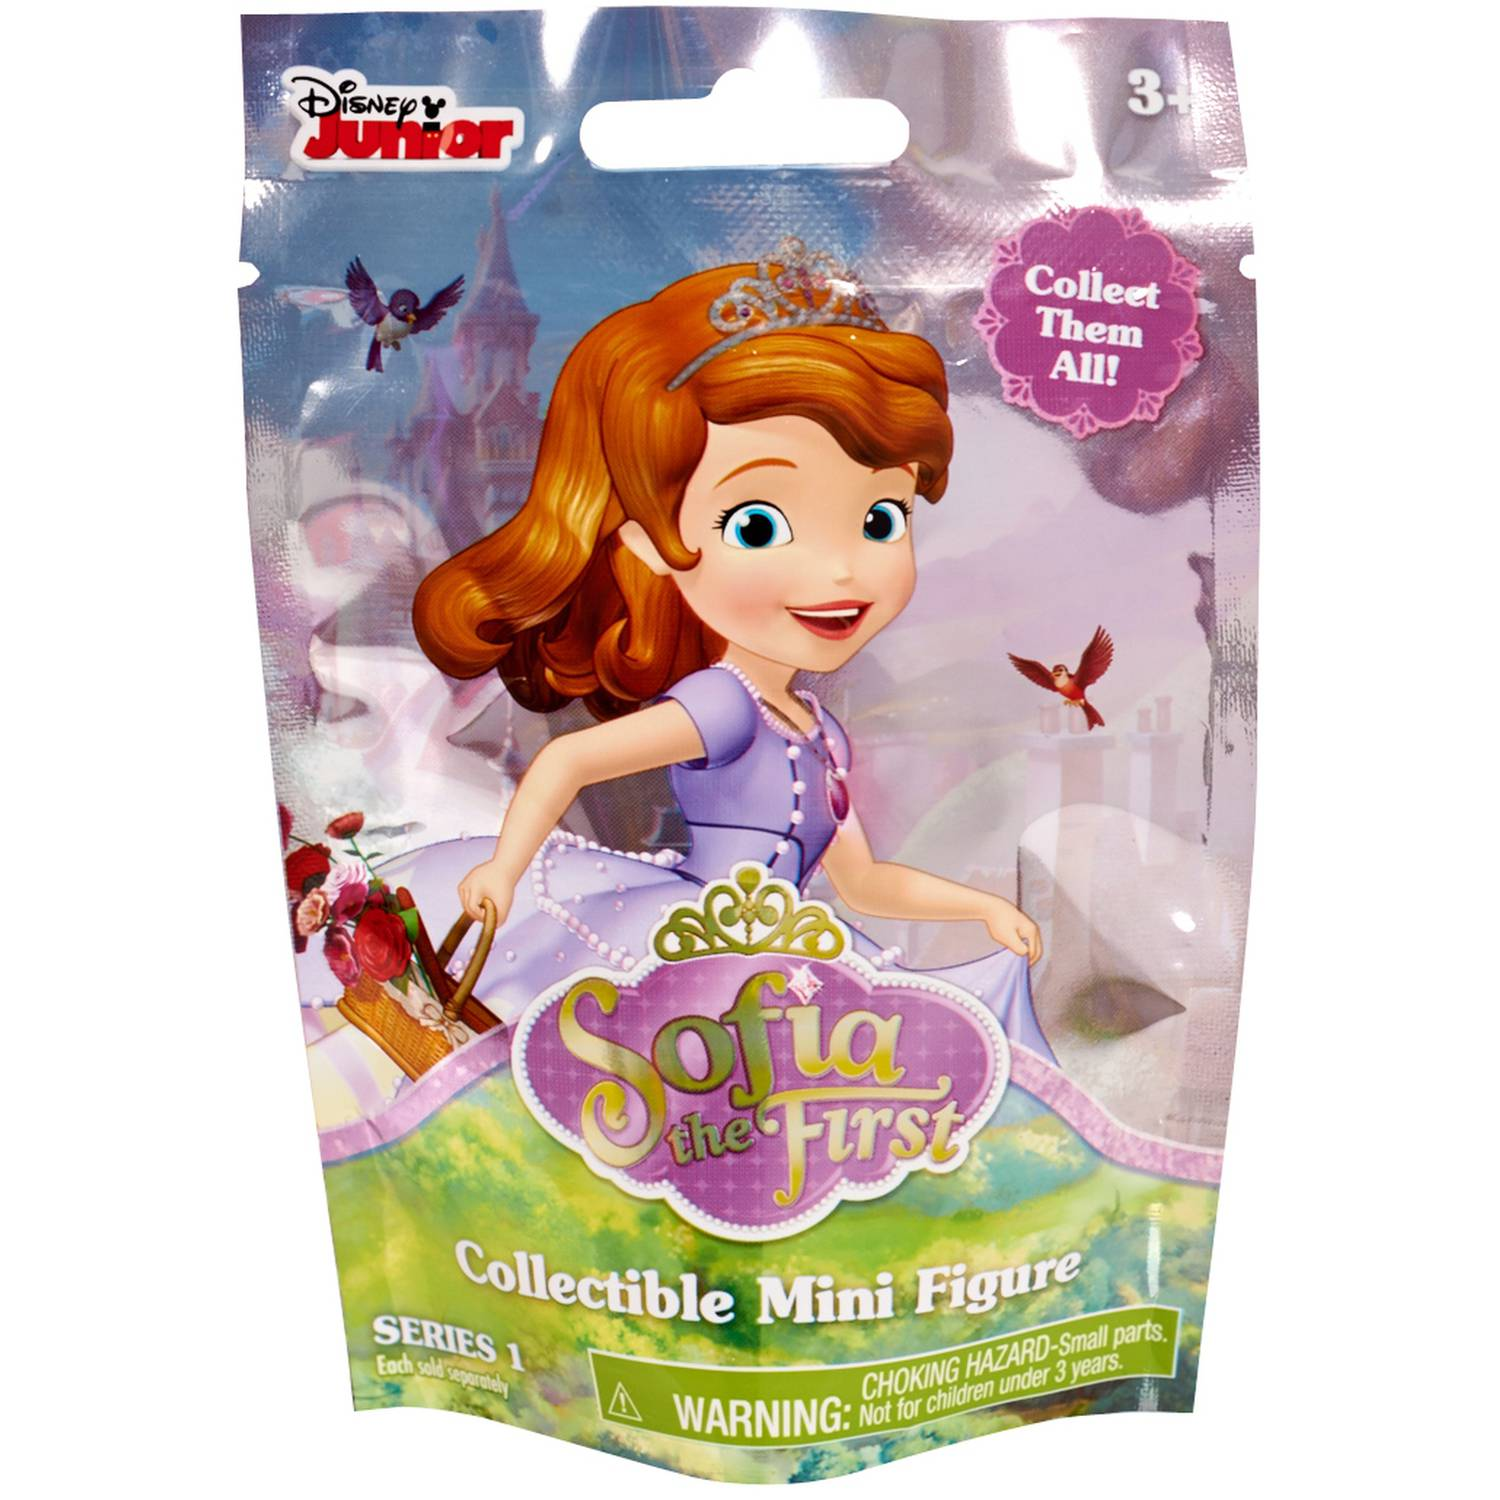 Sofia the First Blind Pack Figures